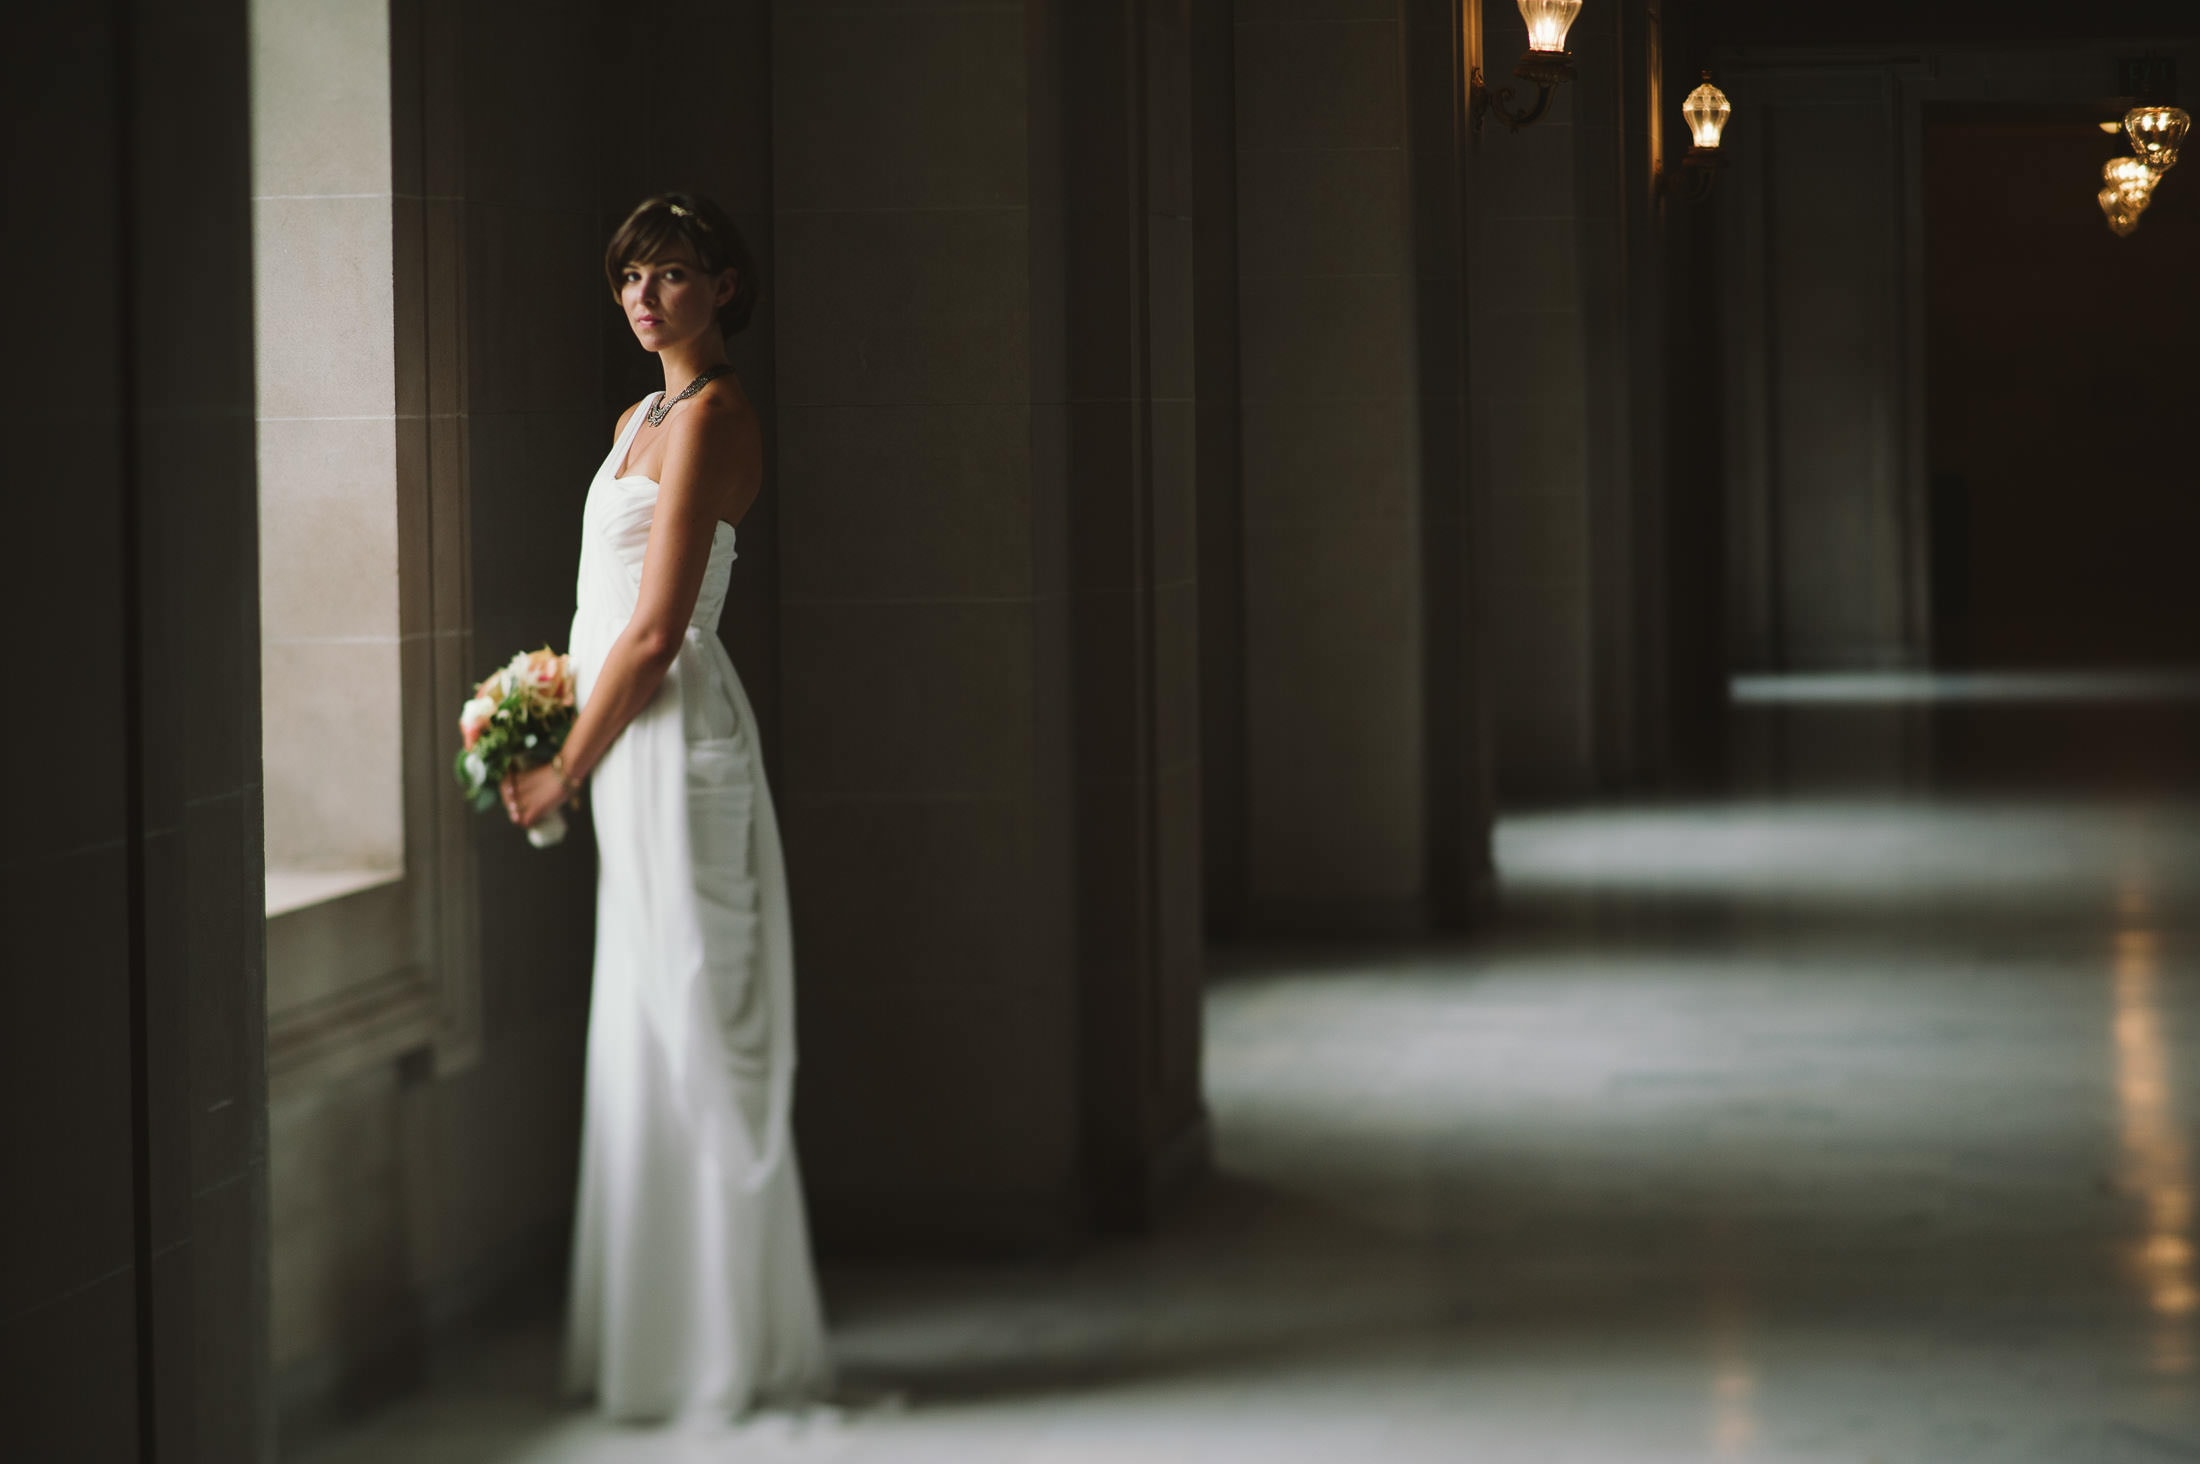 Bridal Portrait at San Francisco City Hall Wedding